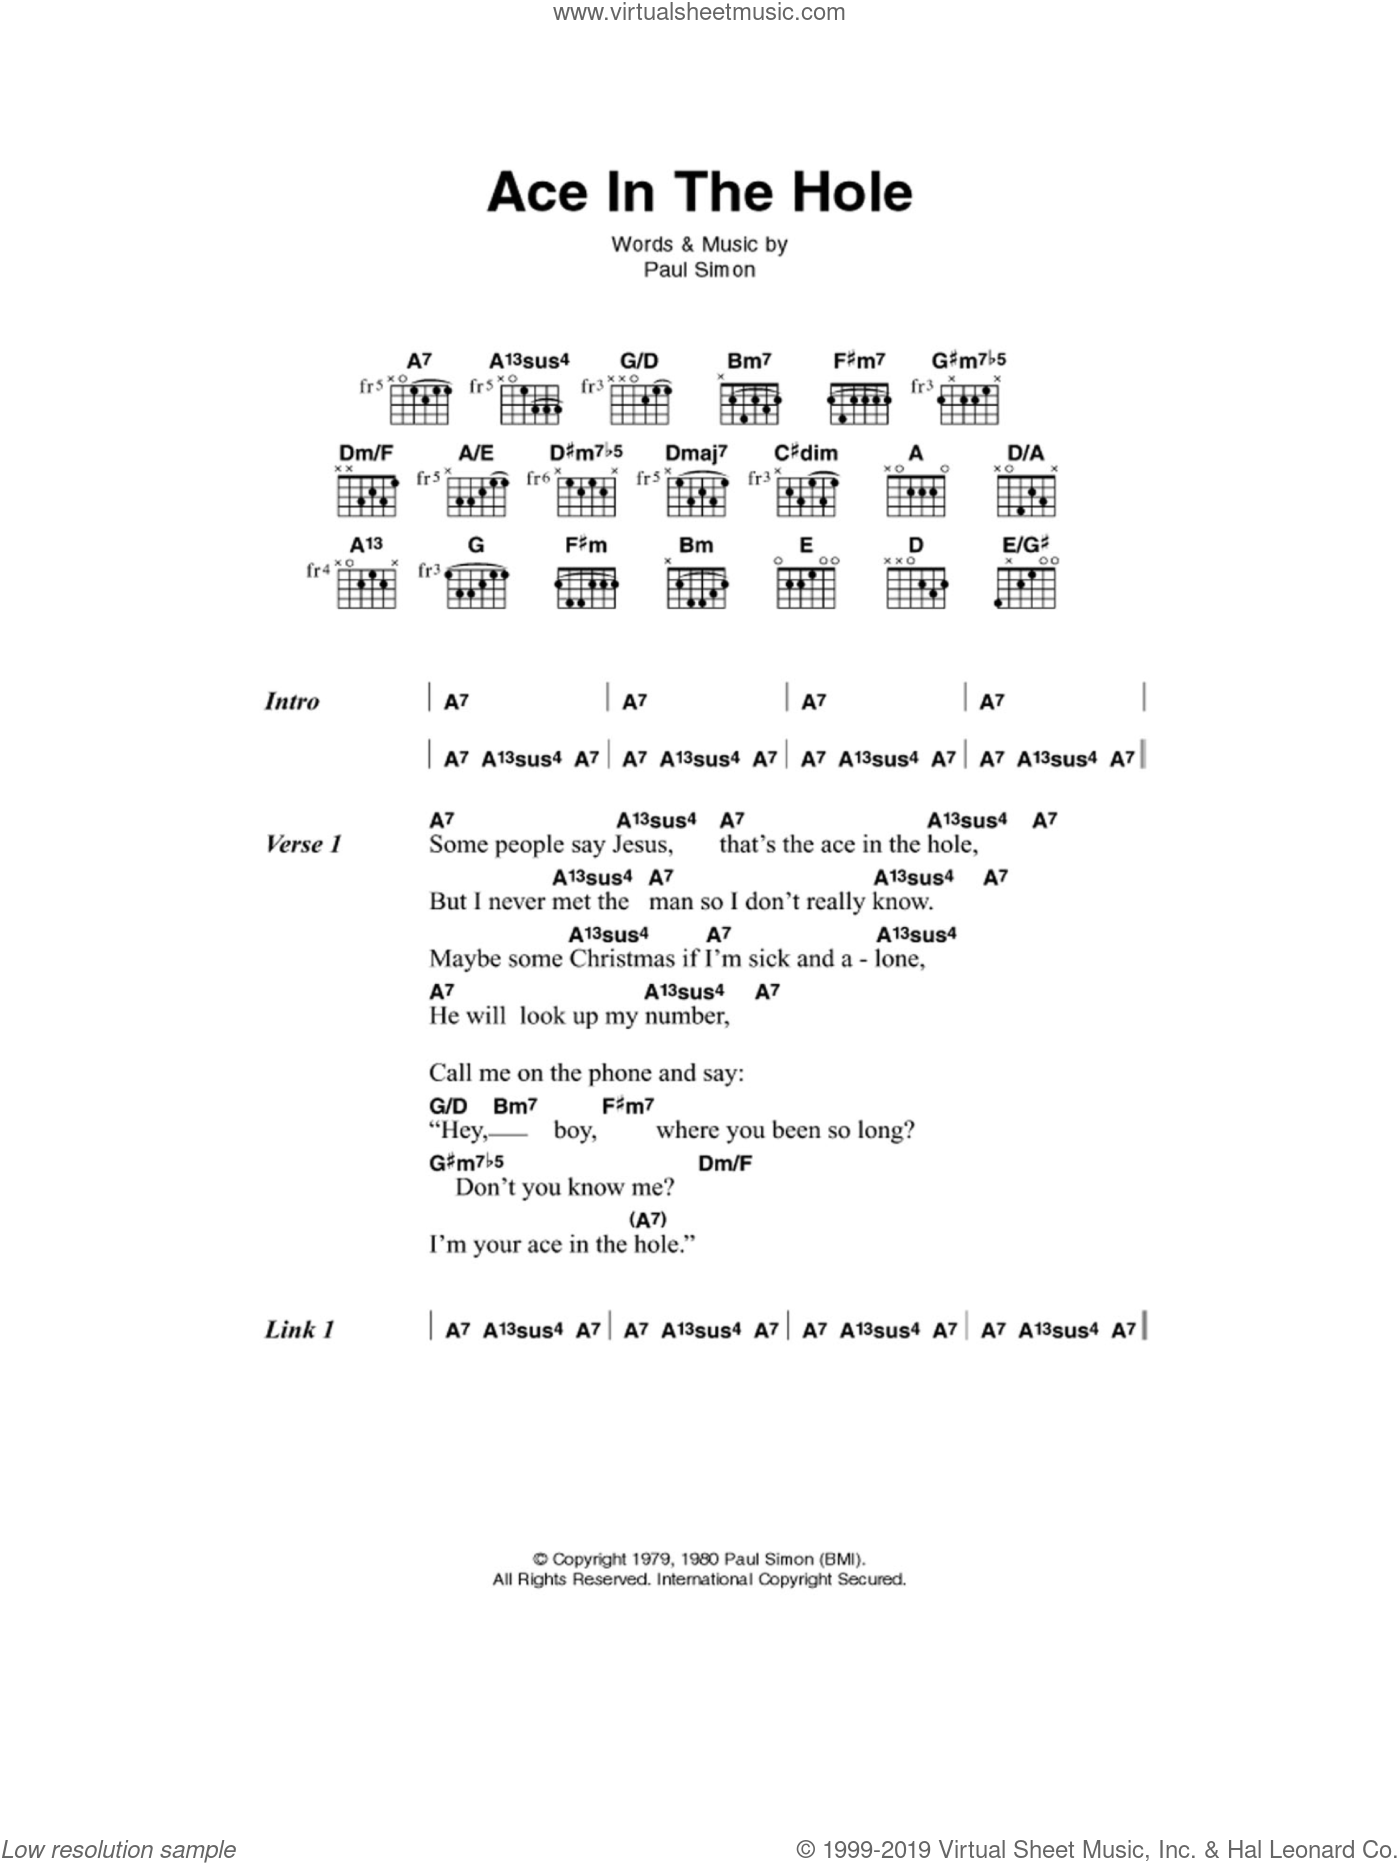 Ace In The Hole sheet music for guitar (chords, lyrics, melody) by Paul Simon